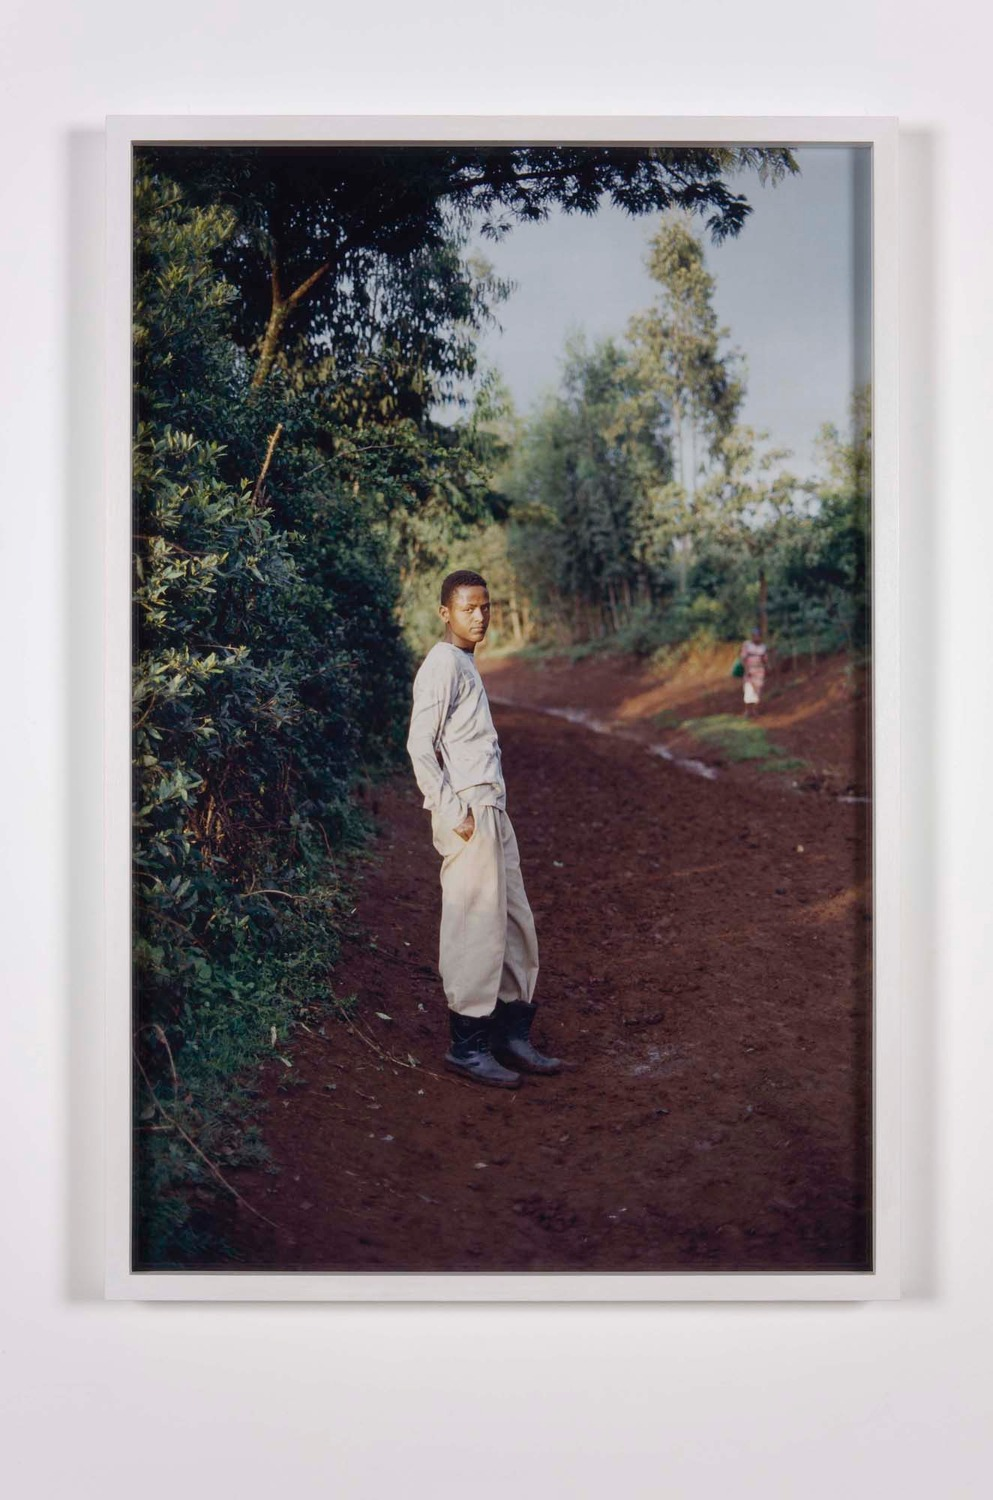 Untitled (EA), 2012, Cibachrome on Dibond, 102 x 69 x 4.5 cm